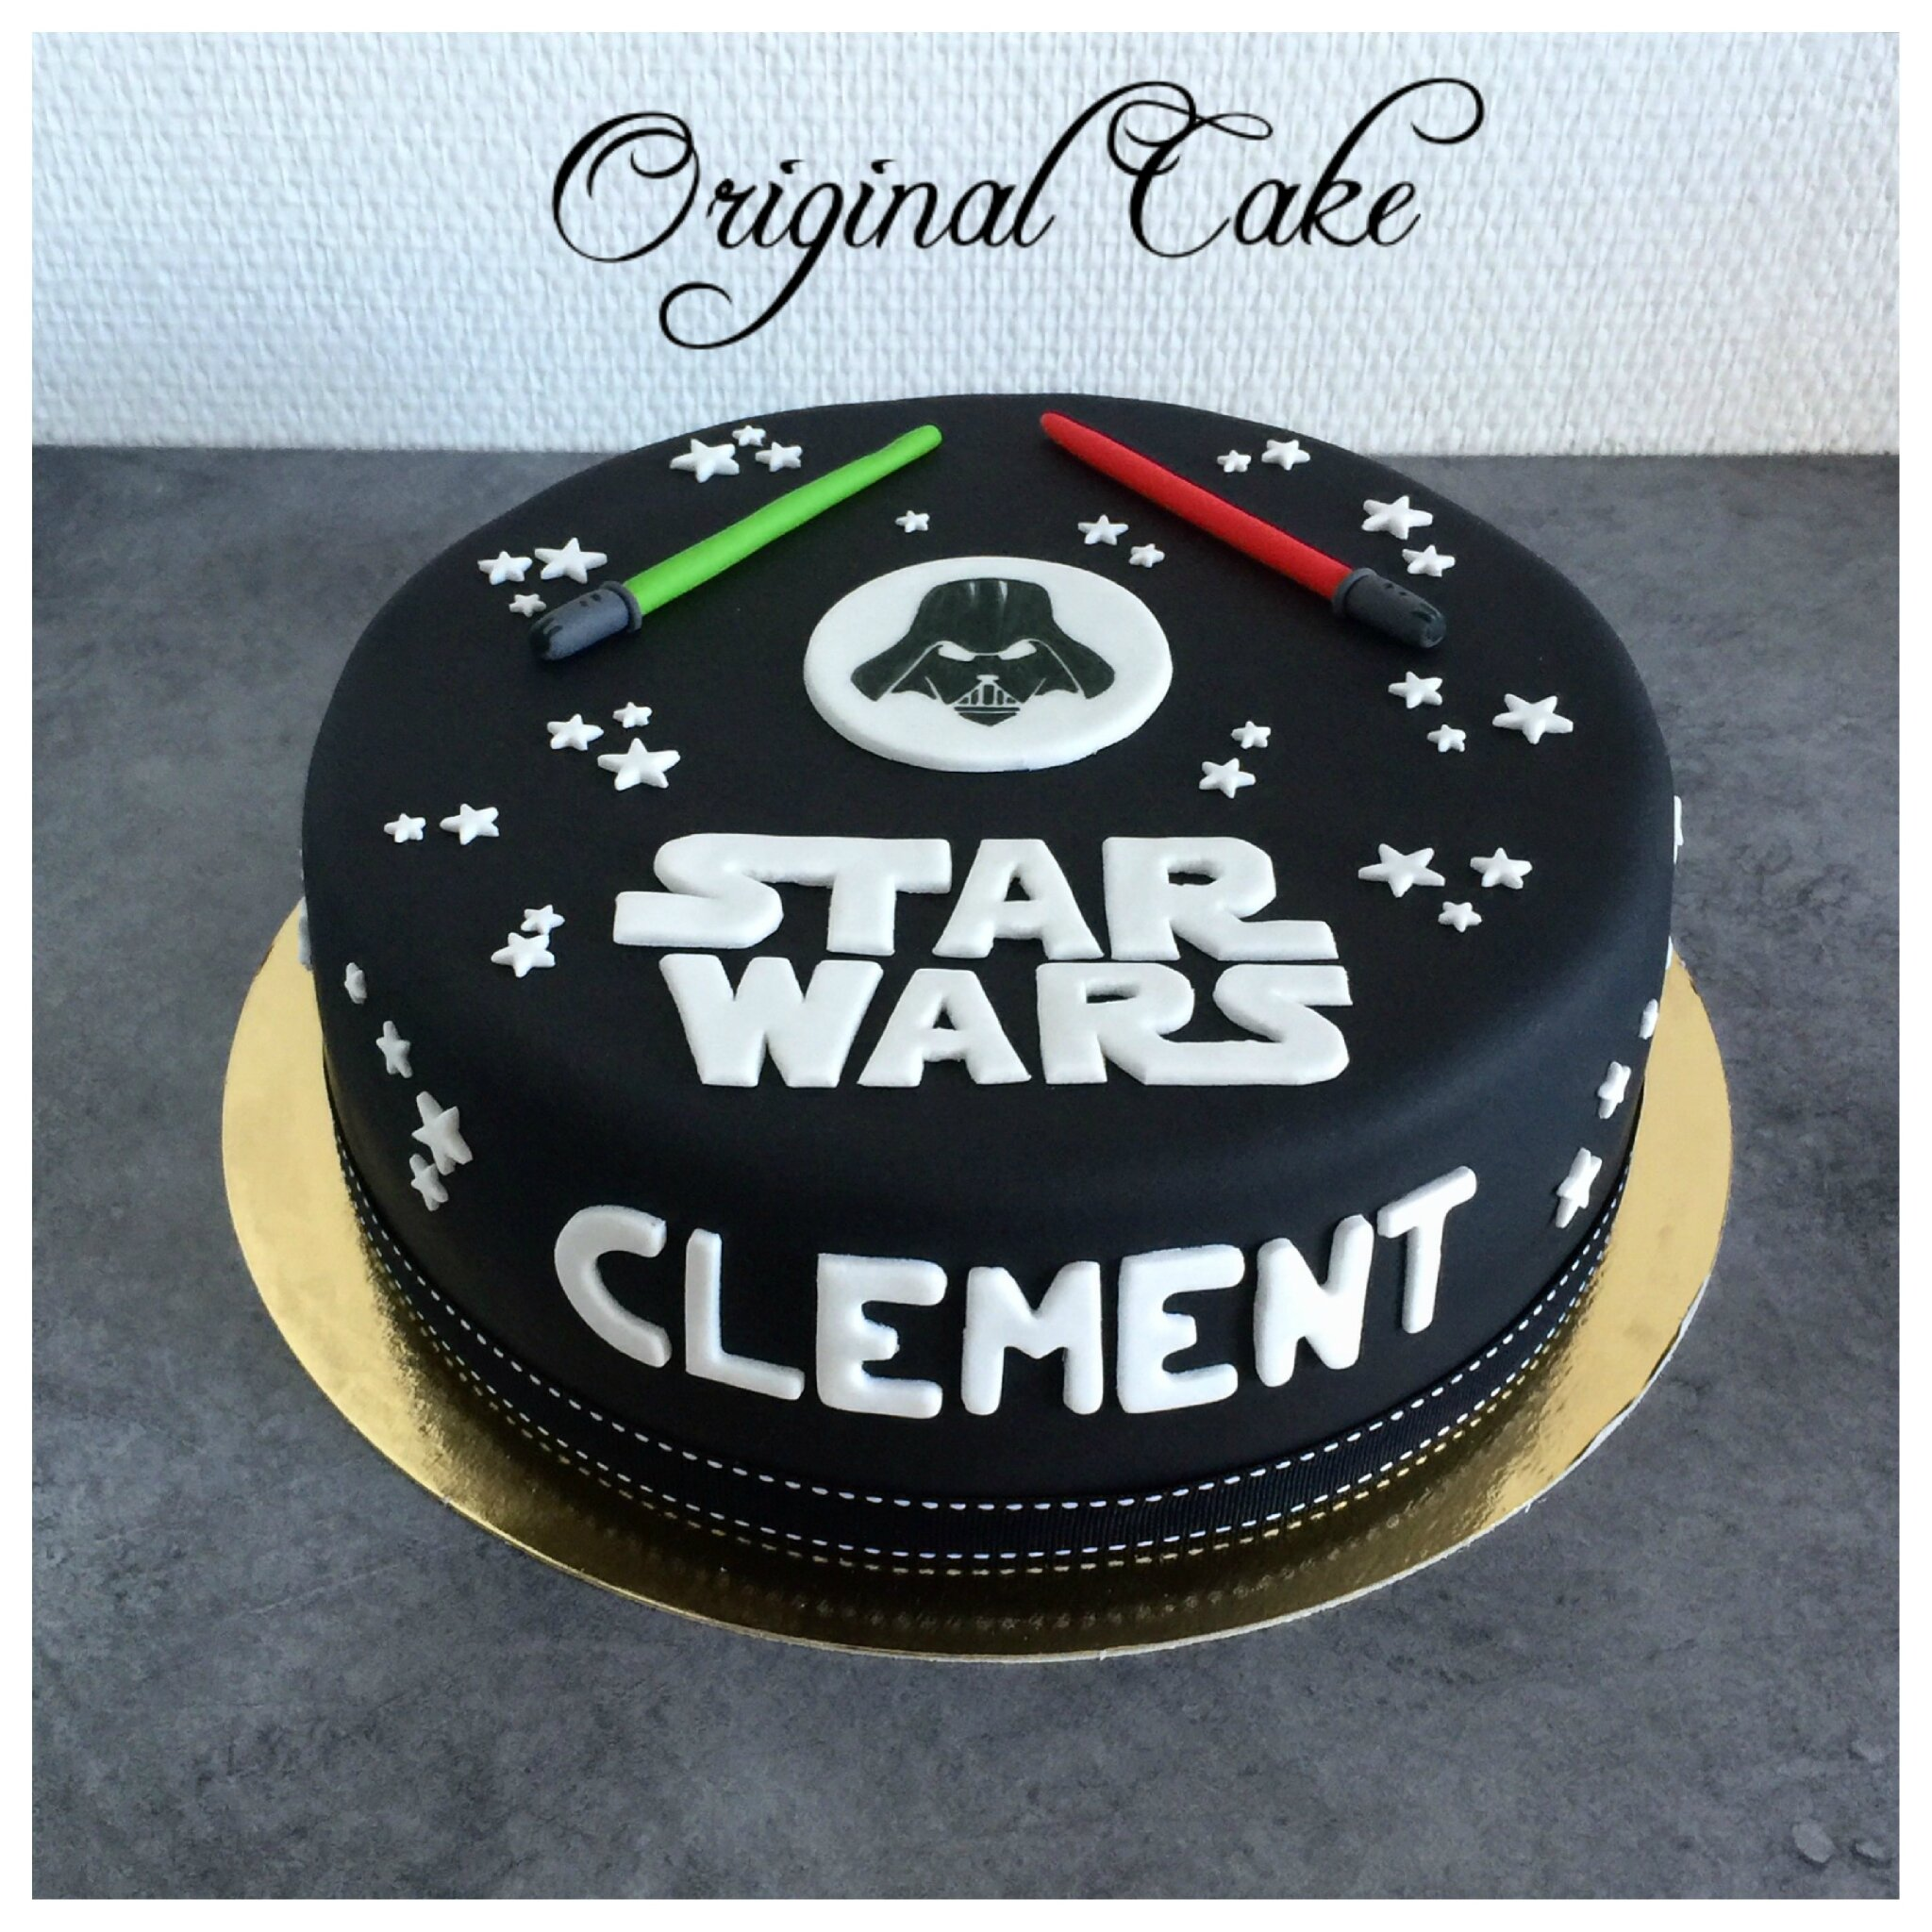 modele gateau pate a sucre star wars arts culinaires magiques. Black Bedroom Furniture Sets. Home Design Ideas